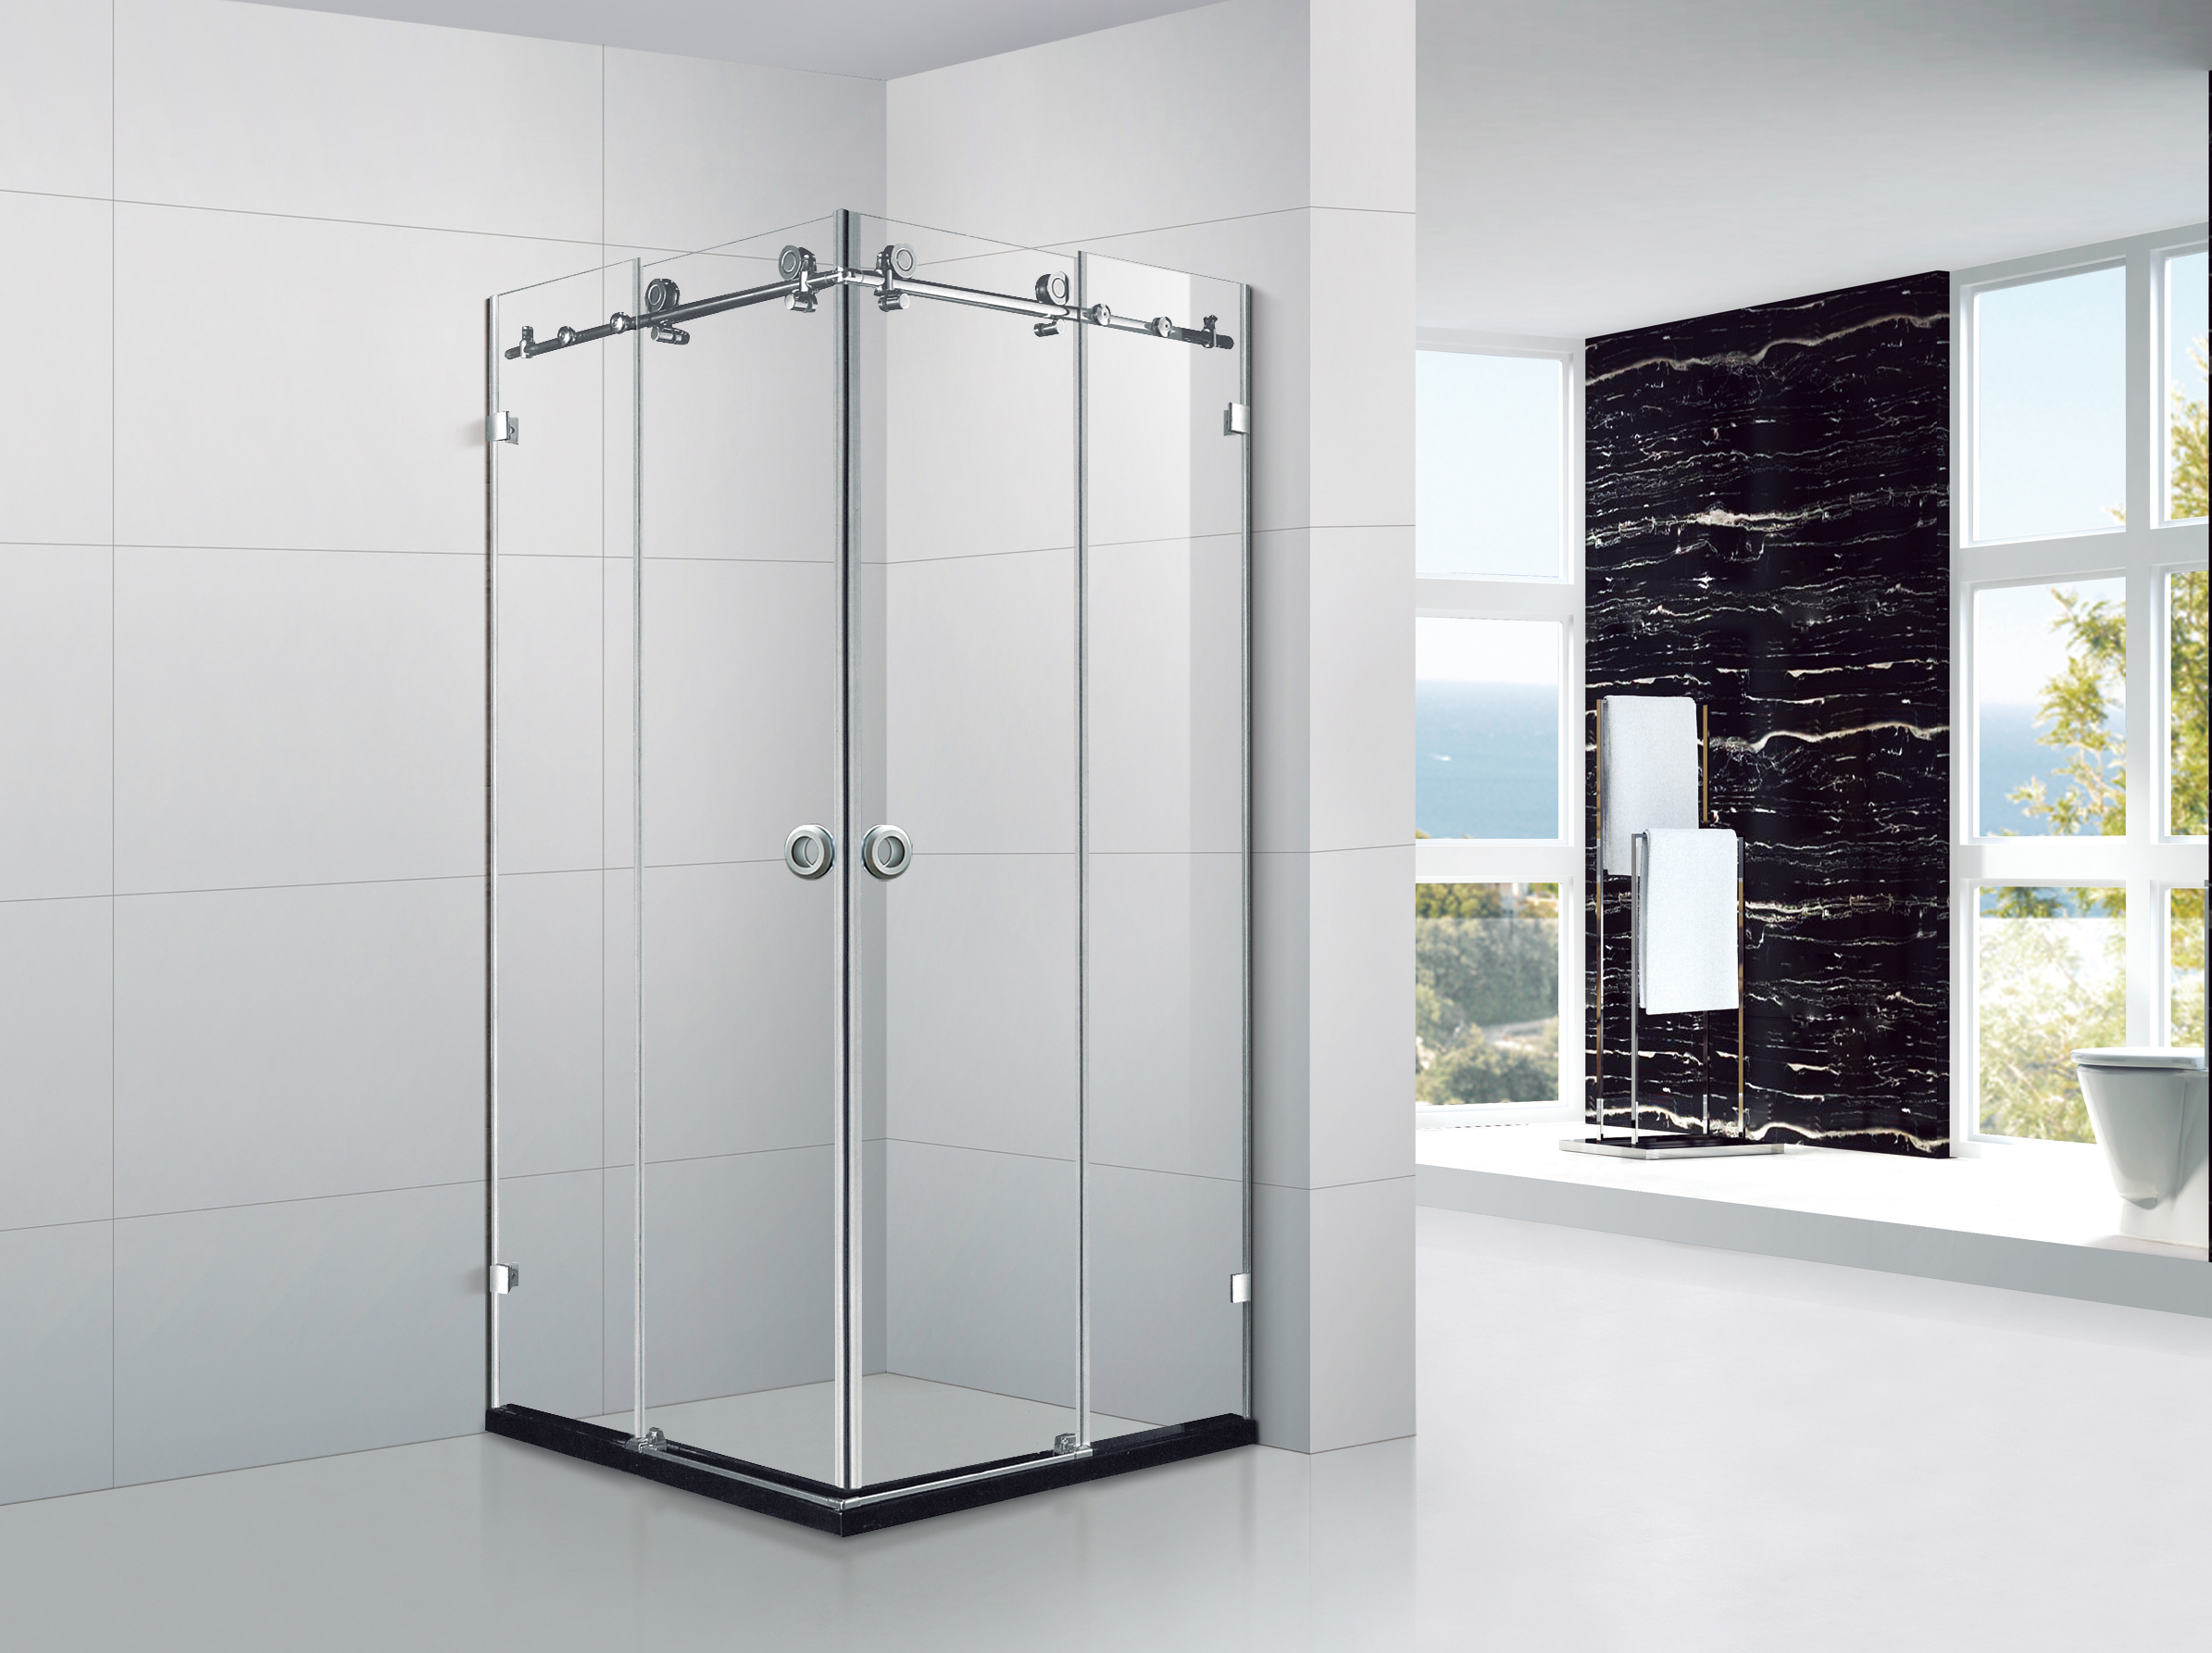 Glass Door Bathroom Corner Bathing Shower Booth Cabinet Buy Shower Bathroom Shower Booth Bathroom Shower Product On Alibaba Com